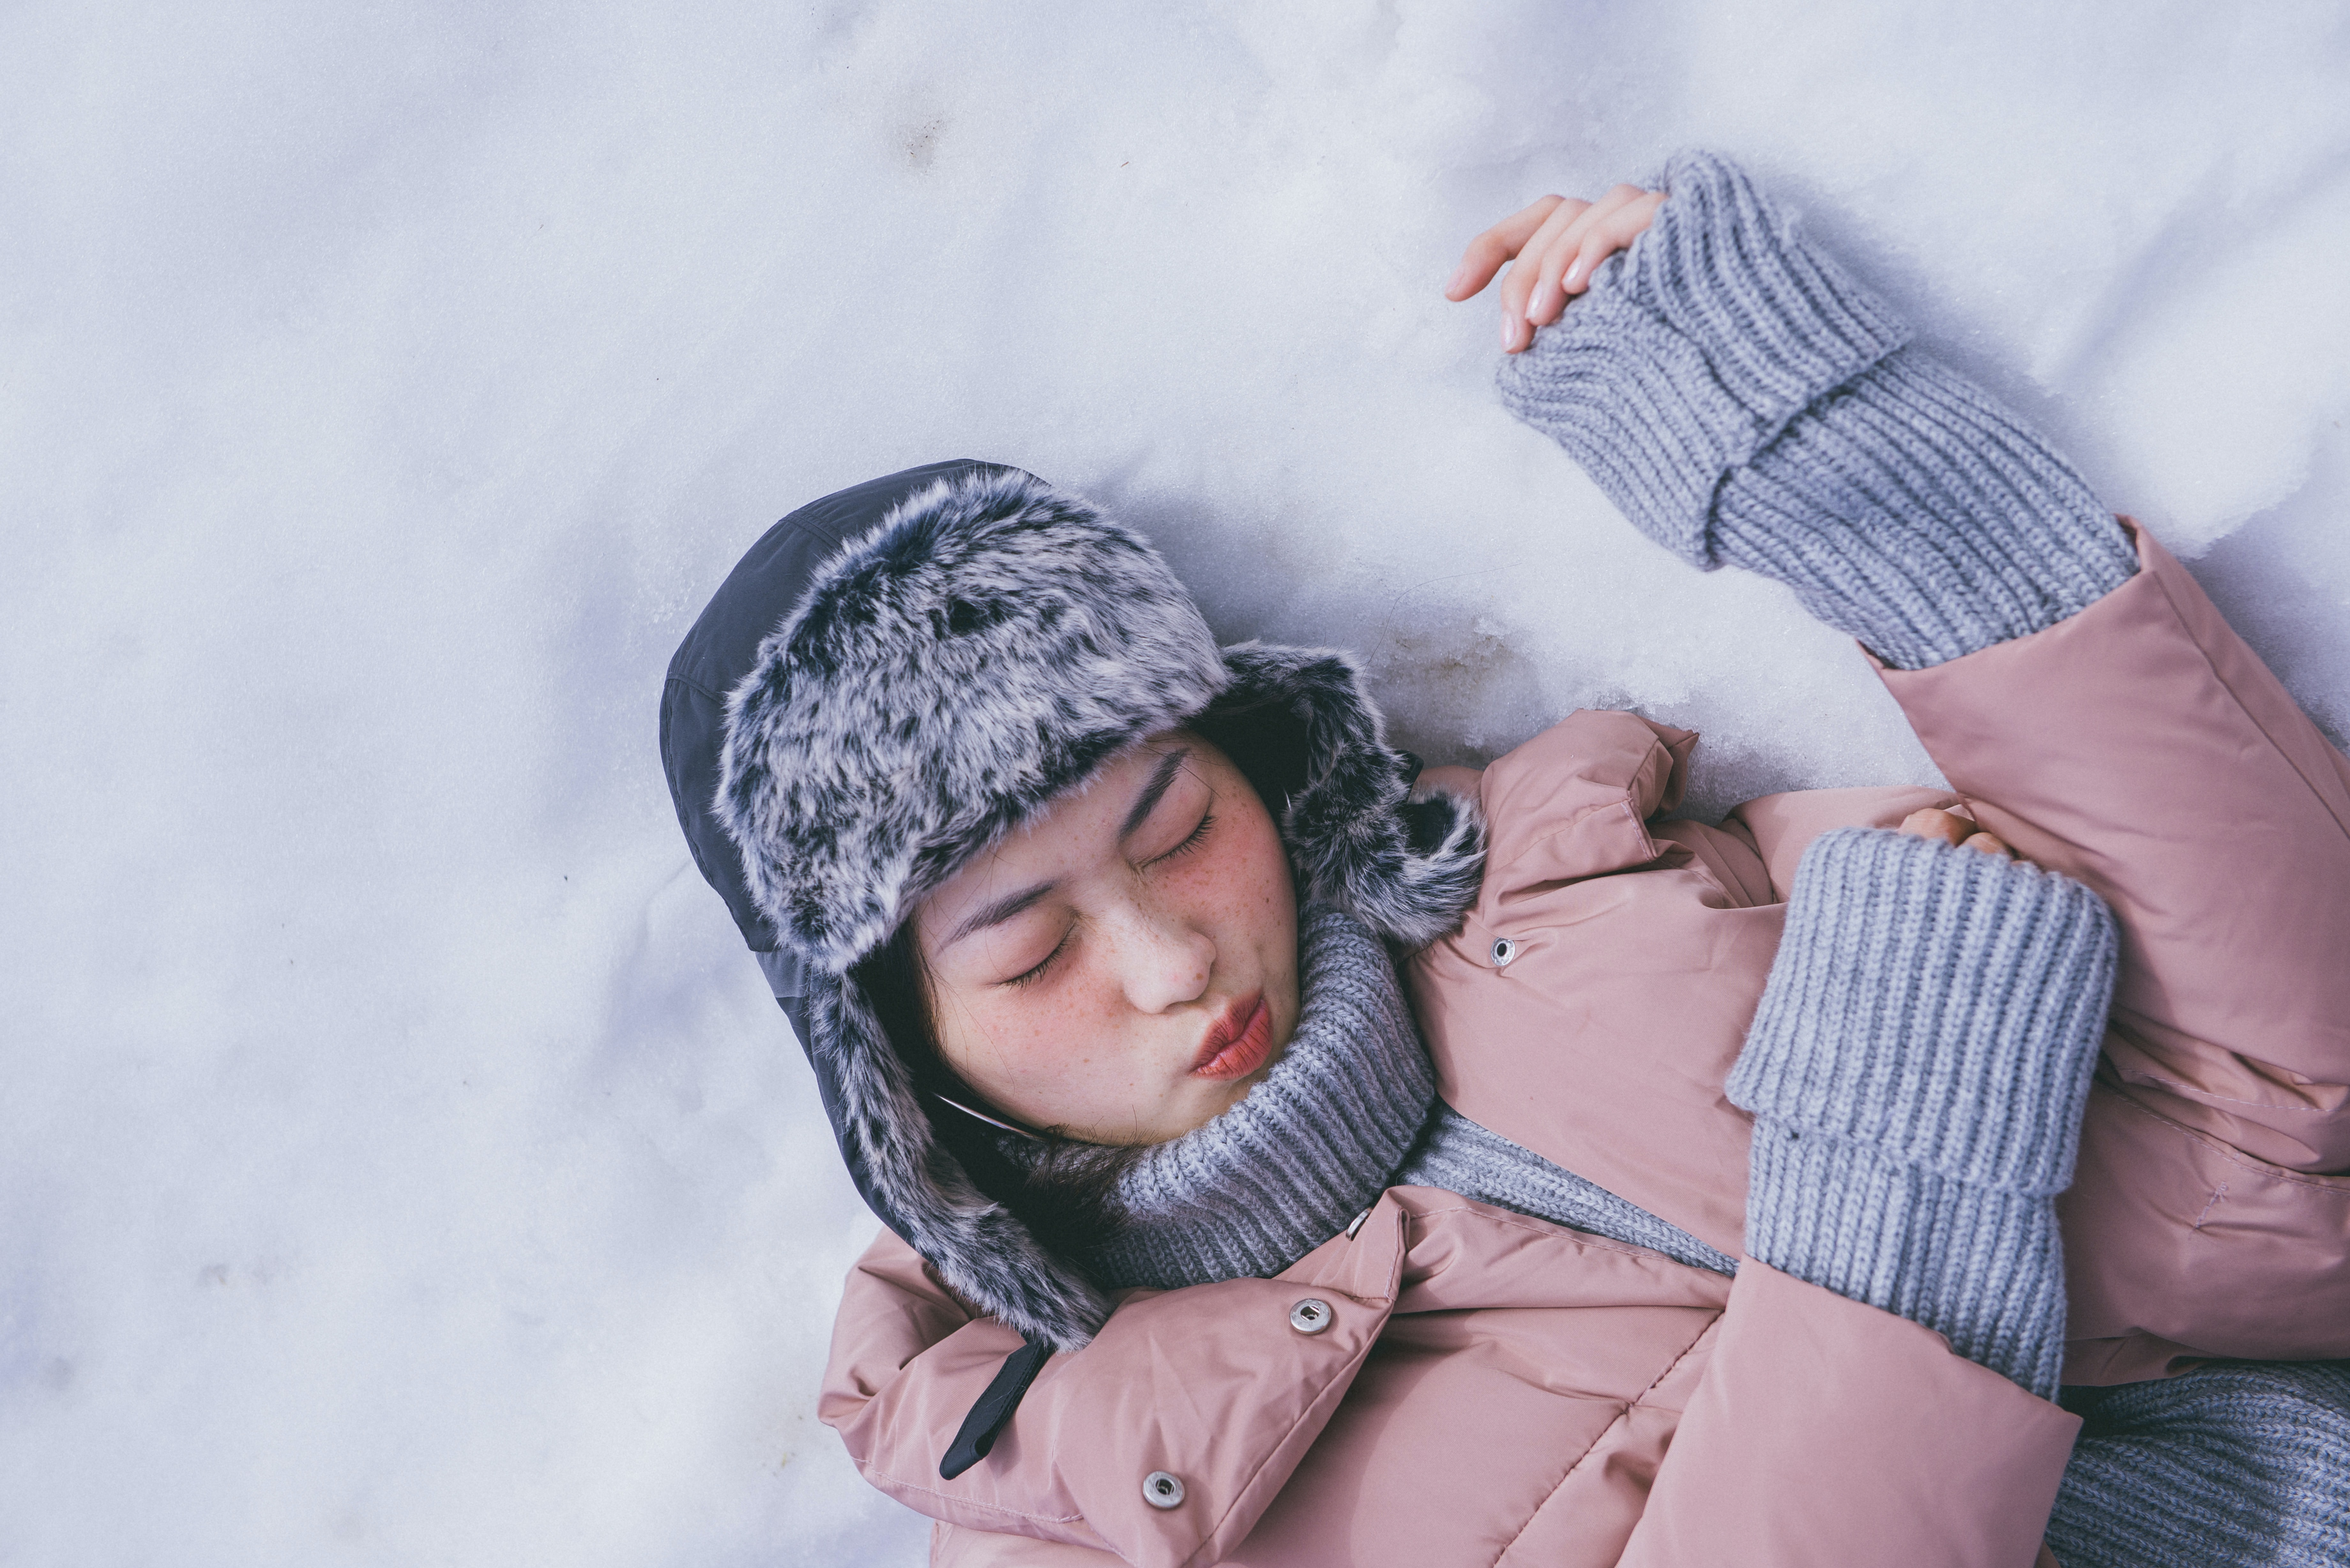 Uncomfortable woman making a pained expression laying in the snow